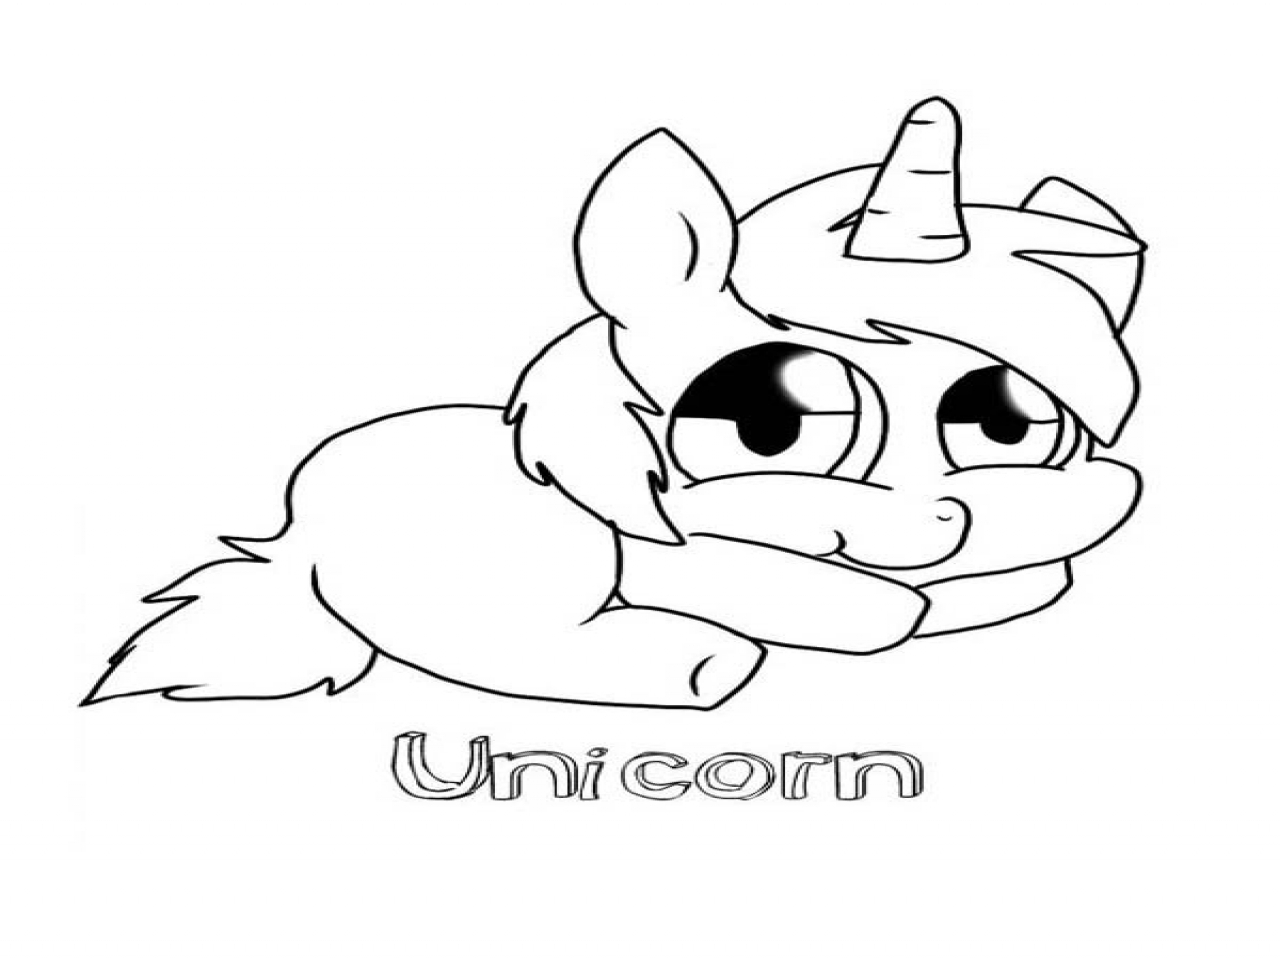 Cute Baby Unicorn Coloring Pages at GetColorings.com